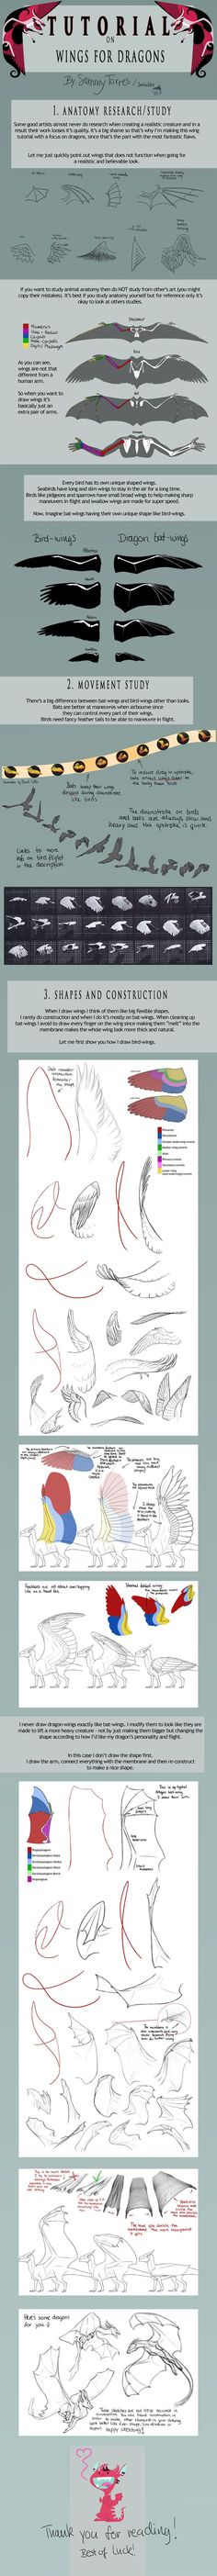 TUTORIAL: Wings for Dragons by SammyTorres on deviantART: